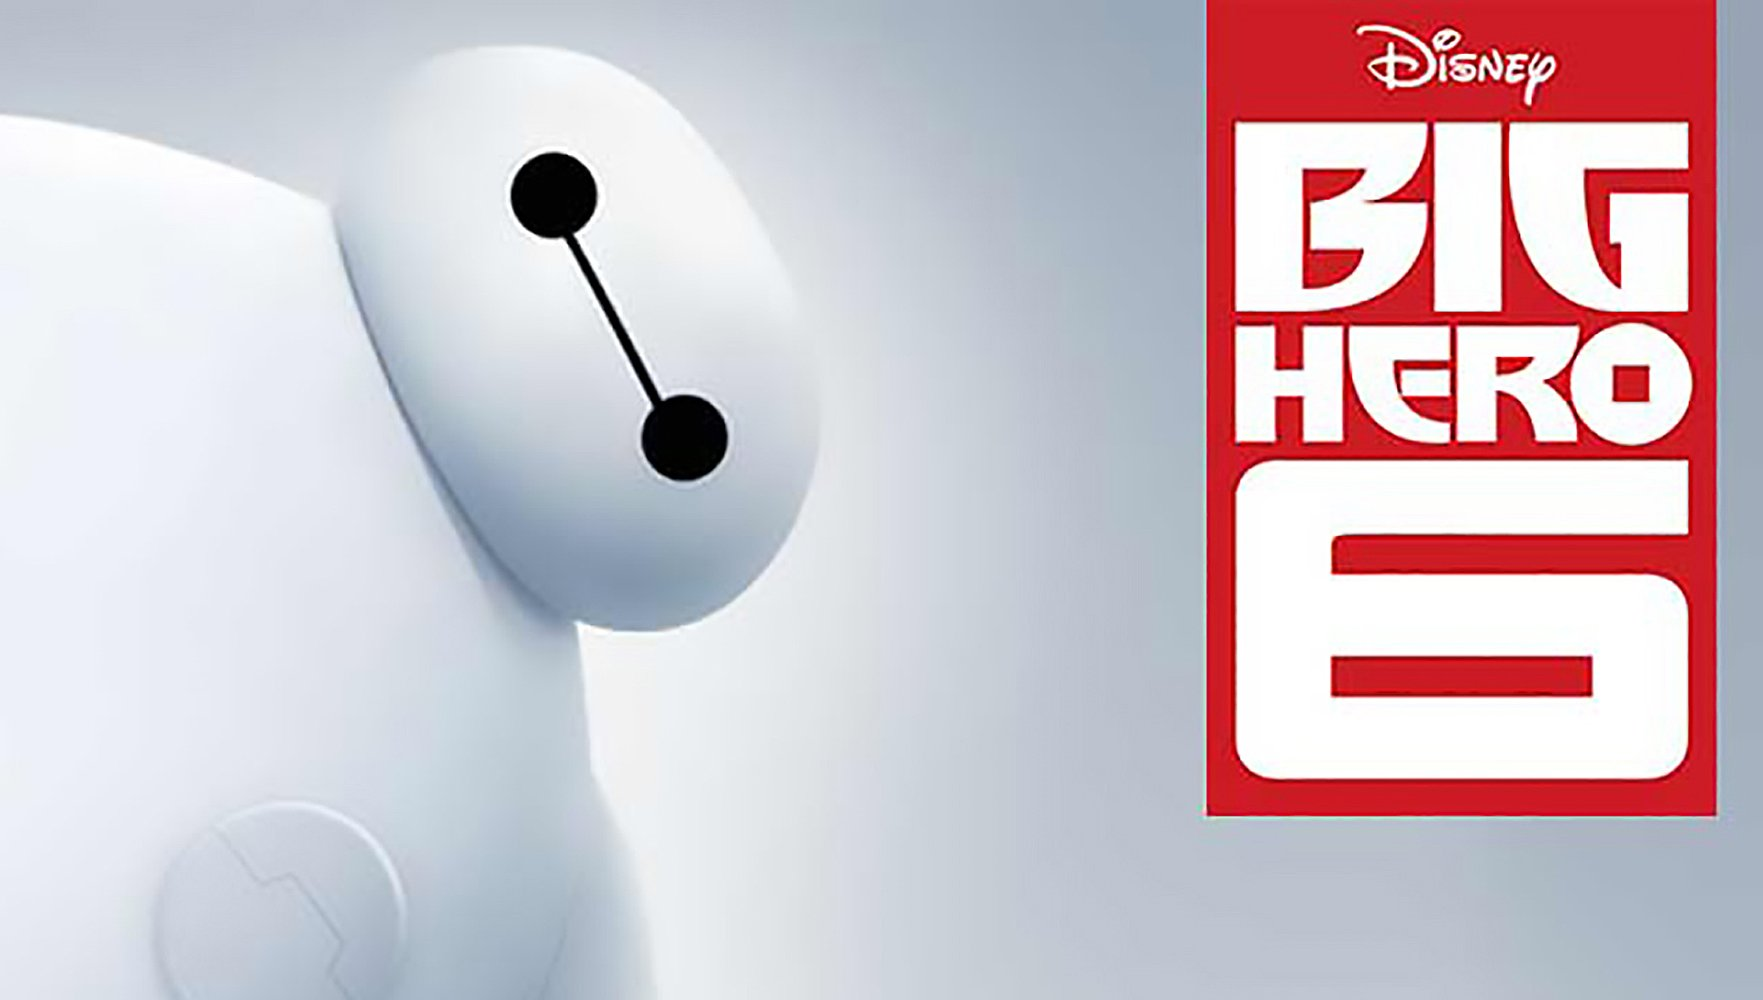 Big Hero 6 - Critique du film de Don Hall et Chris Williams